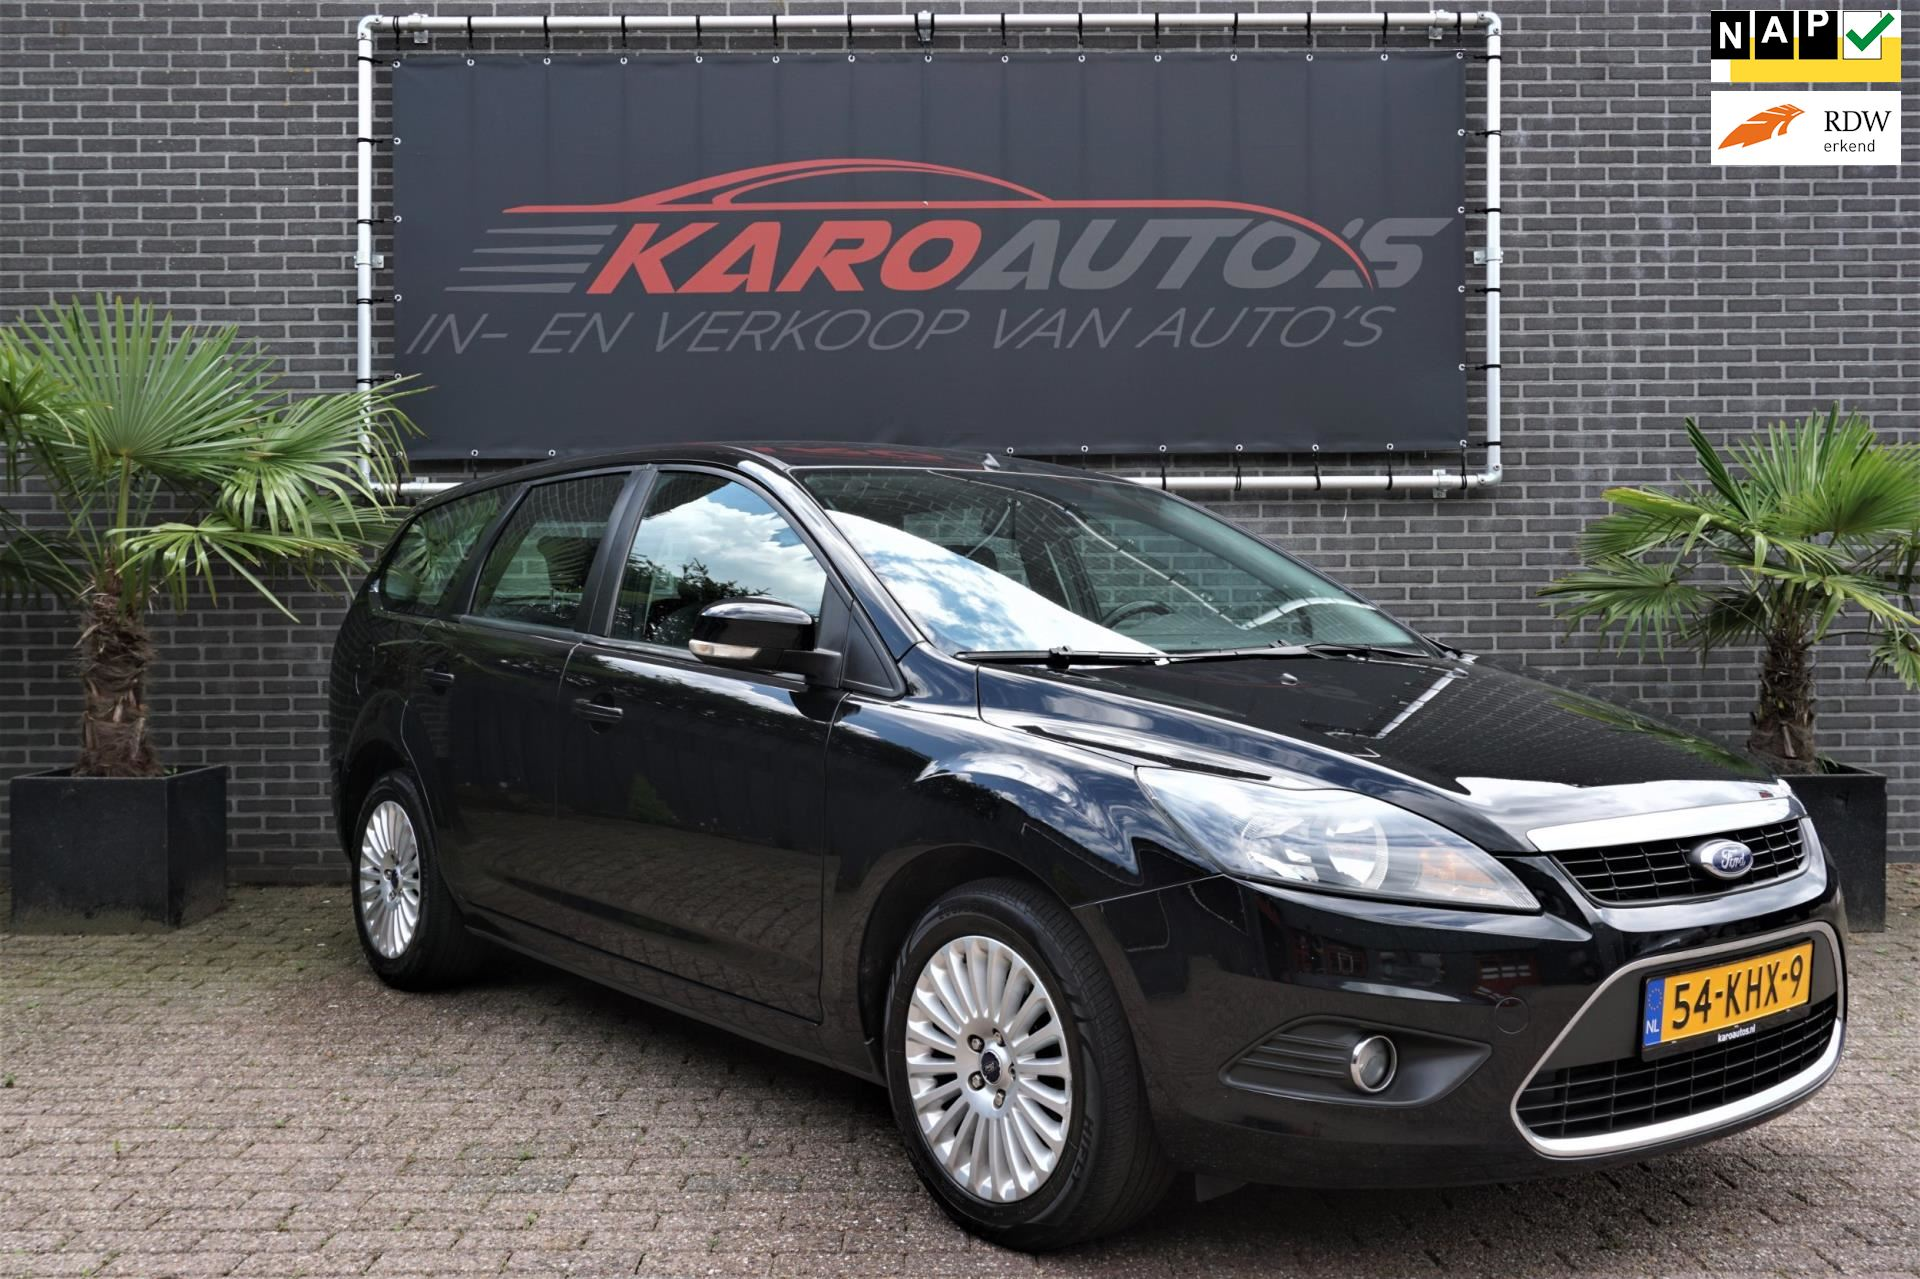 Ford Focus Wagon occasion - KARO Auto's